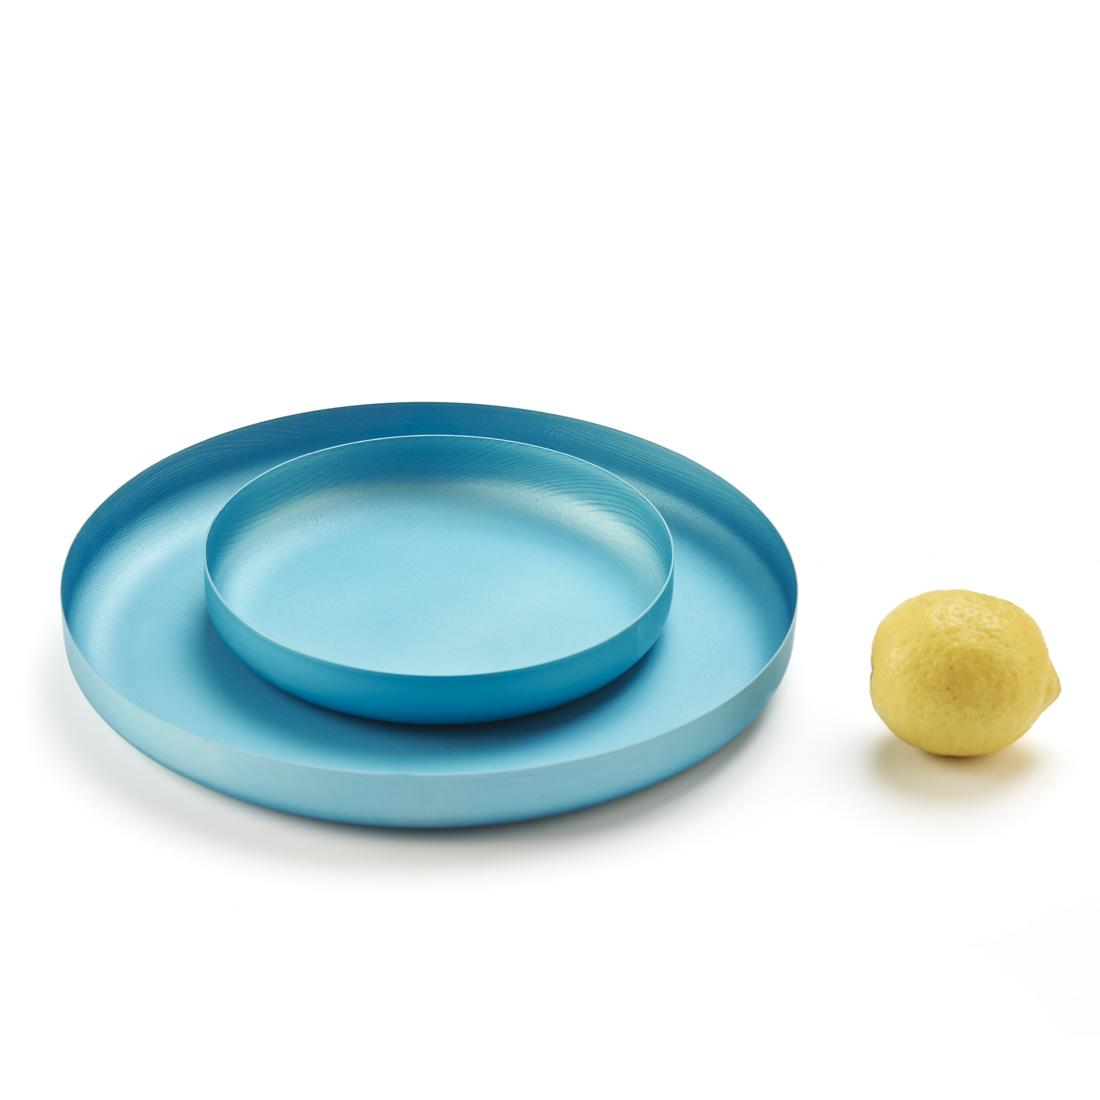 AETHER dish set